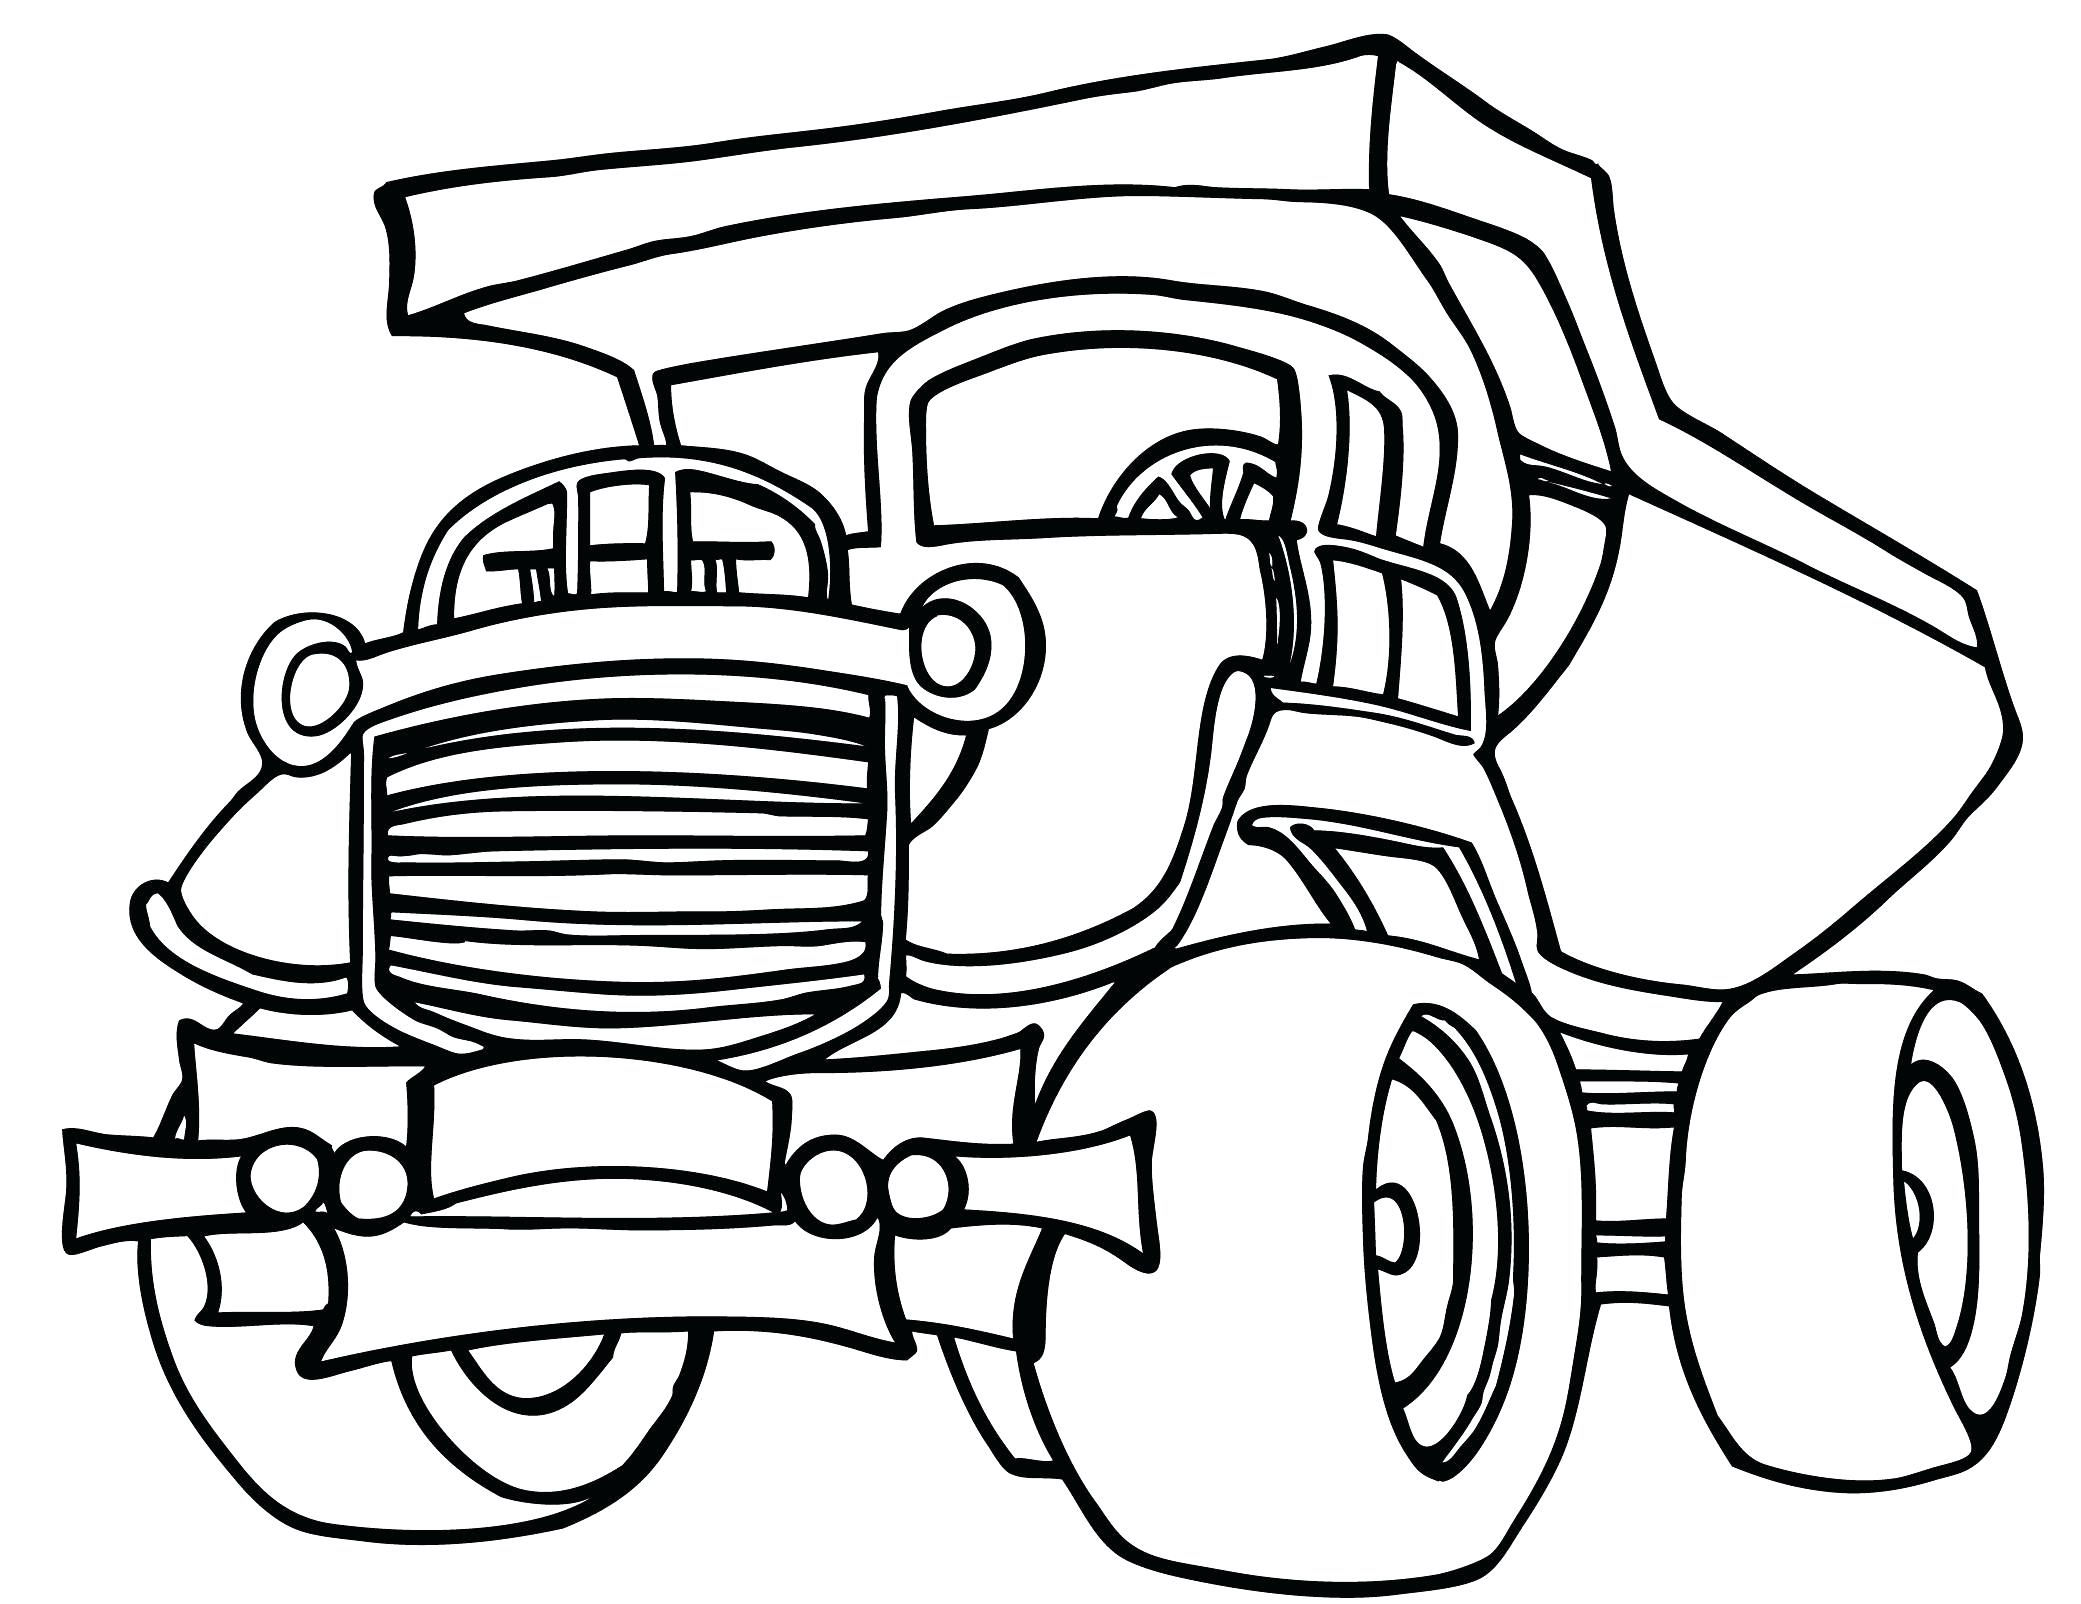 2081x1604 Coloring Construction Vehicle Coloring Pages Backhoe Sheet Free